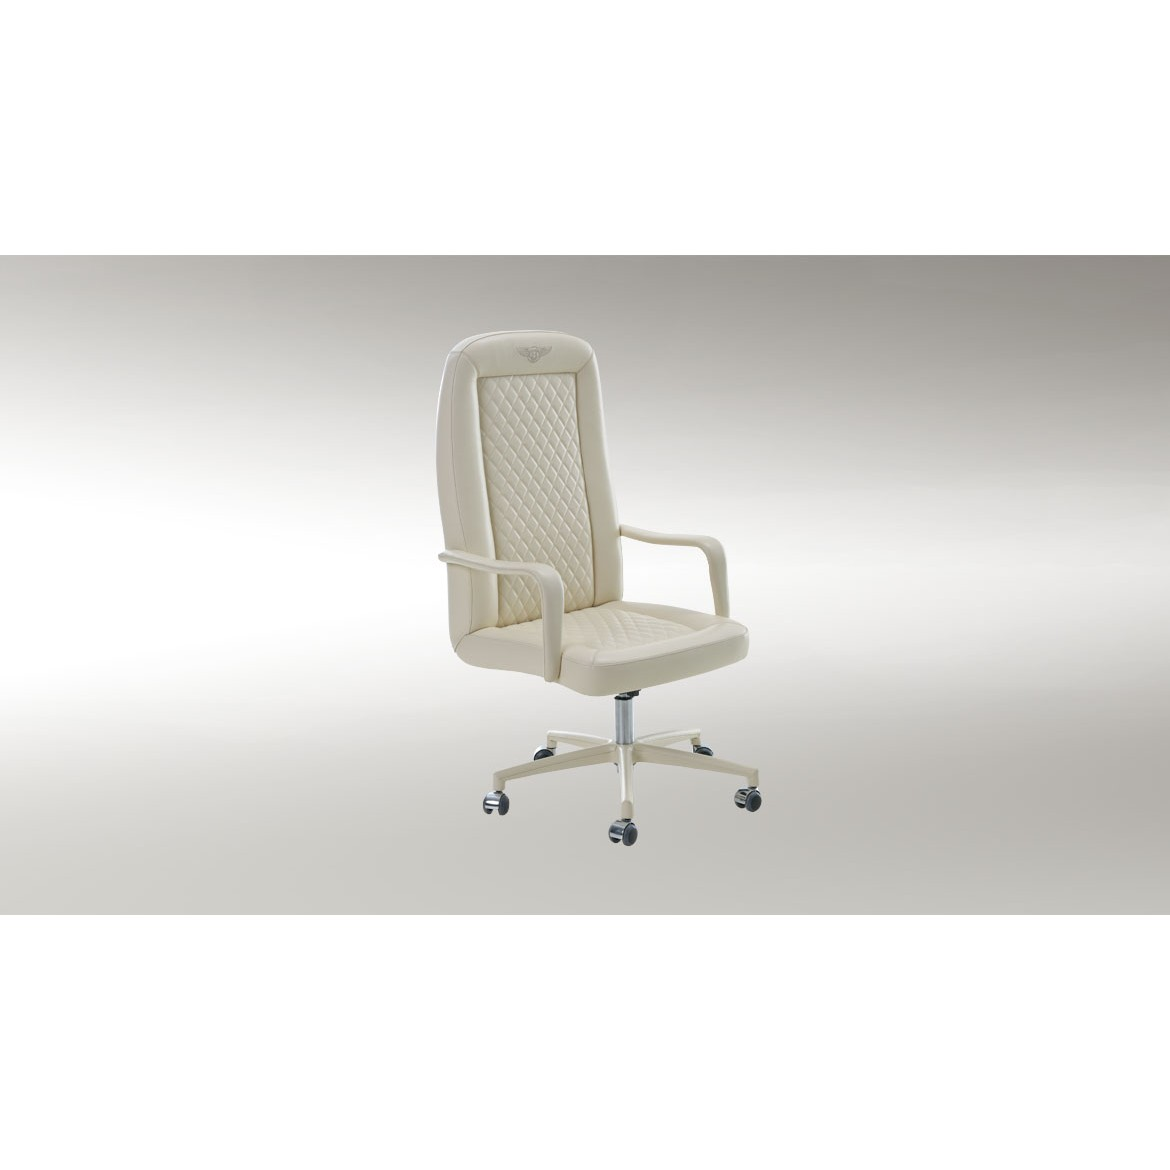 Кресло Rayleigh Office Chair, дизайн Bentley Home